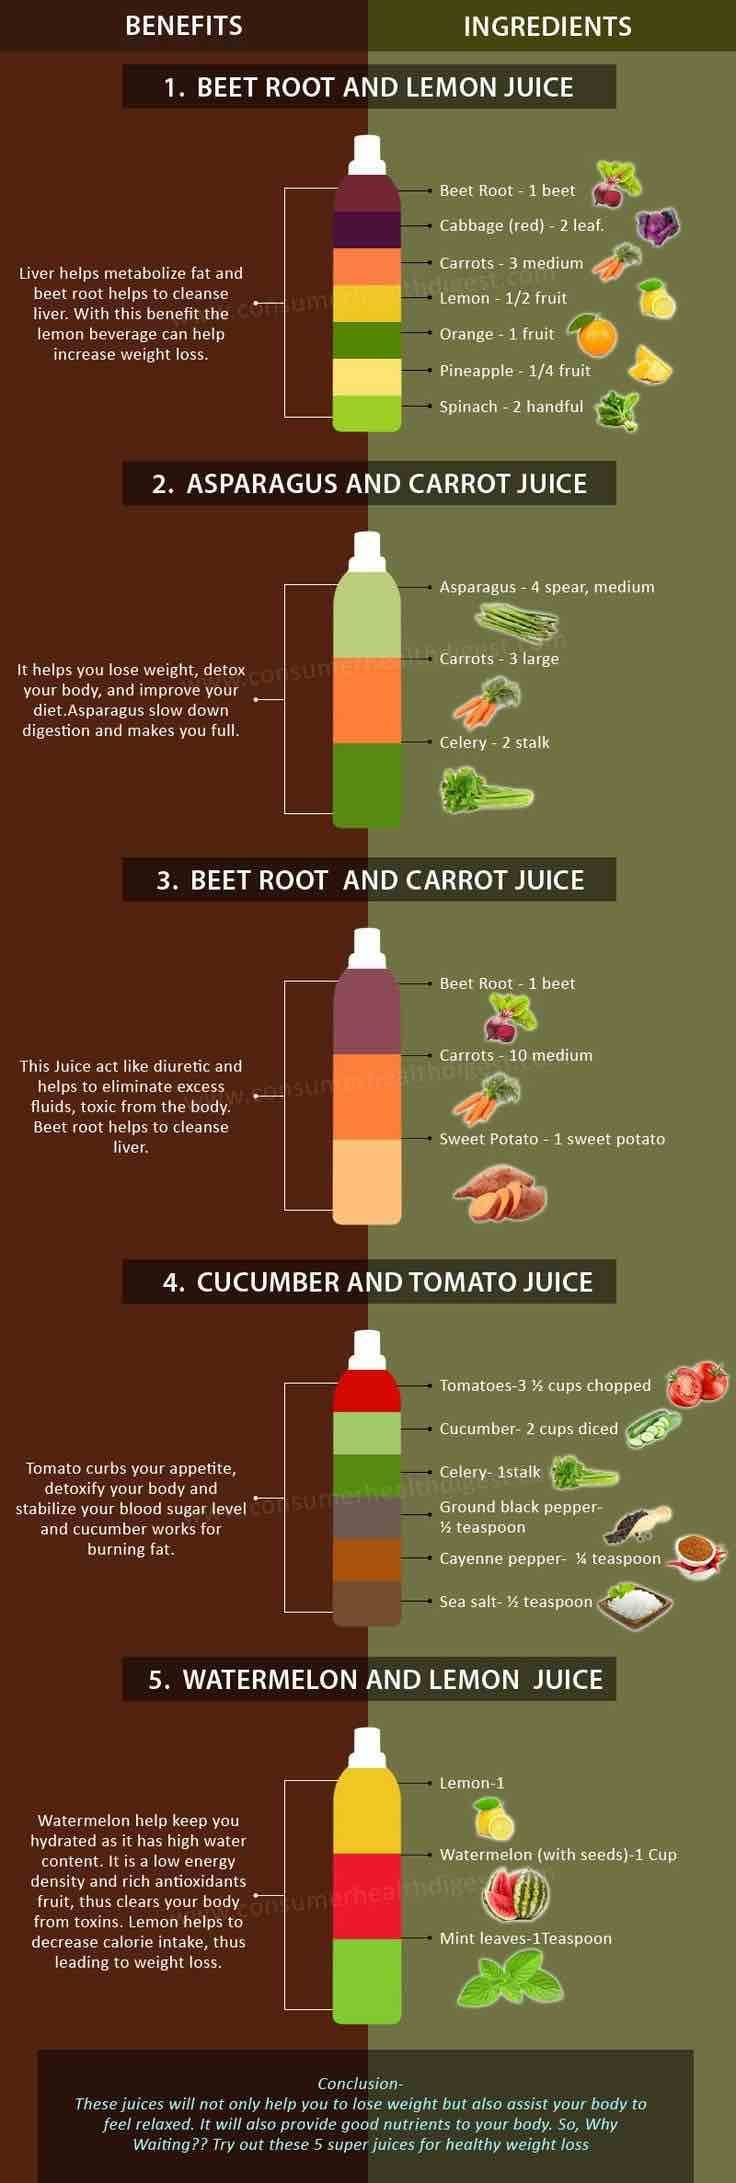 Look for juicing recipes to detox your body? Try these fresh and simple juice and smoothie recipes made from whole fruits and vegetables! 1. 10 Benefits of adding juices to your diet; Via http://www.stylecraze.com 2. Start a healthier lifestyle with this 7-day cleansing recipe; via http://www.kaylachandler.com 3. 4 Day juice cleansing recipe to detox your body; via http://www.greenthickies.com 4. Juicing recipes for weight […] #naturalskincare #healthyskin #skincareproducts…